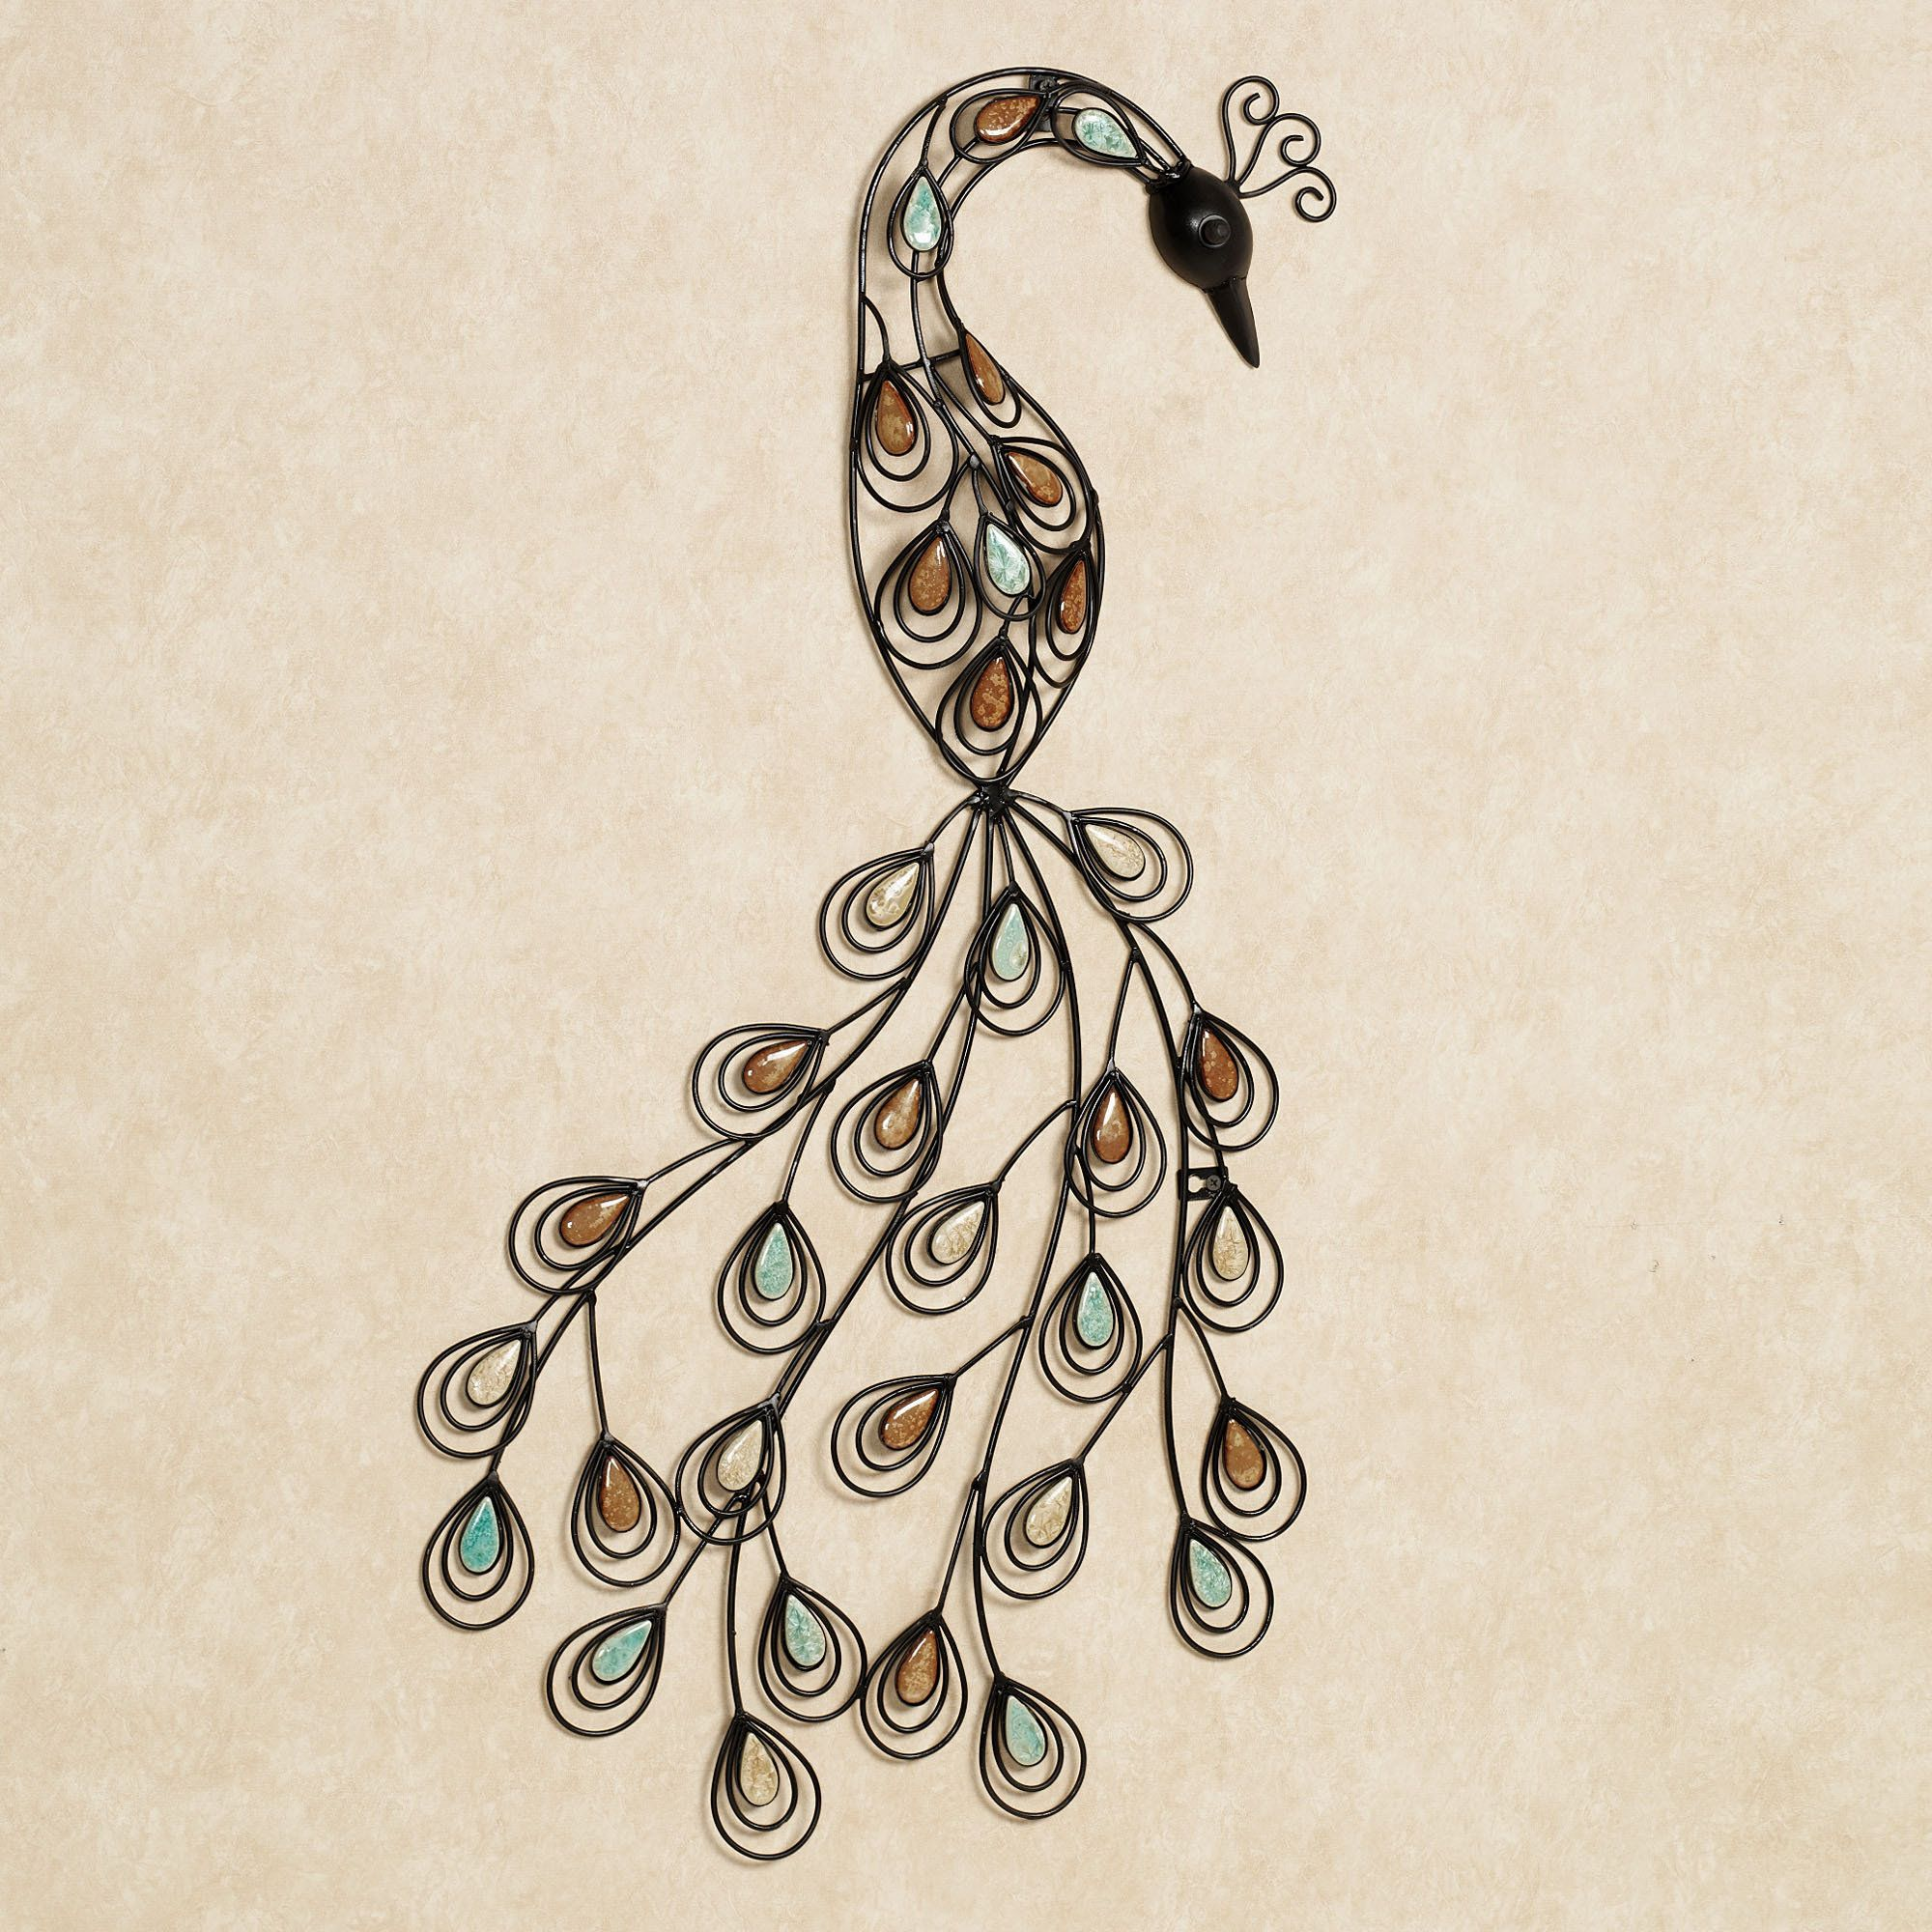 Photo 1 of 2 the resting peacock metal wall art presents one of natures most dazzling creatures in a stylish abstract form handcrafted wrought iron